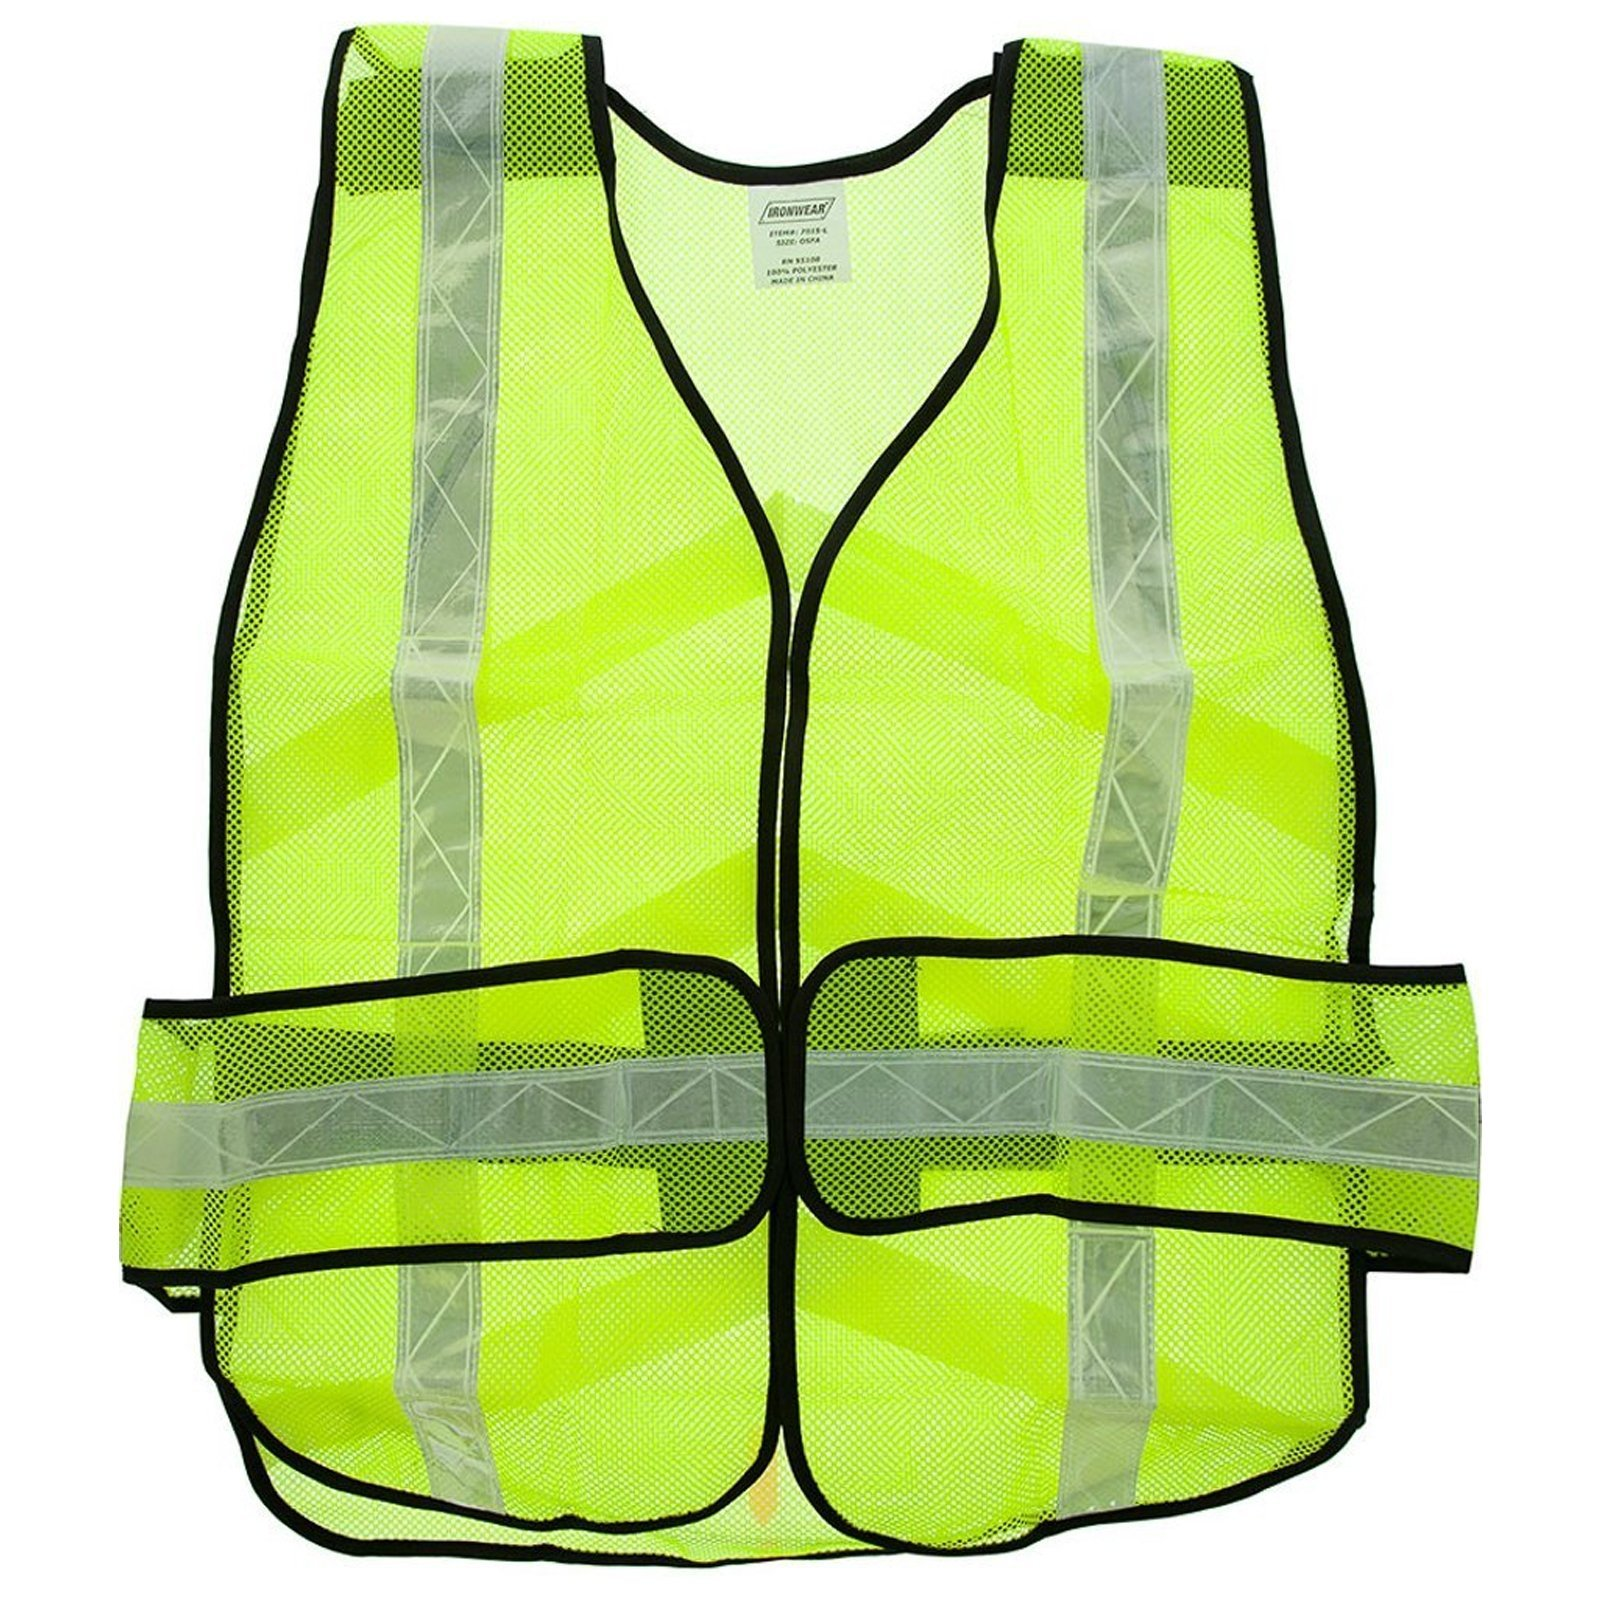 ASR Outdoor Universal Fit Safety Vest - Lime Green